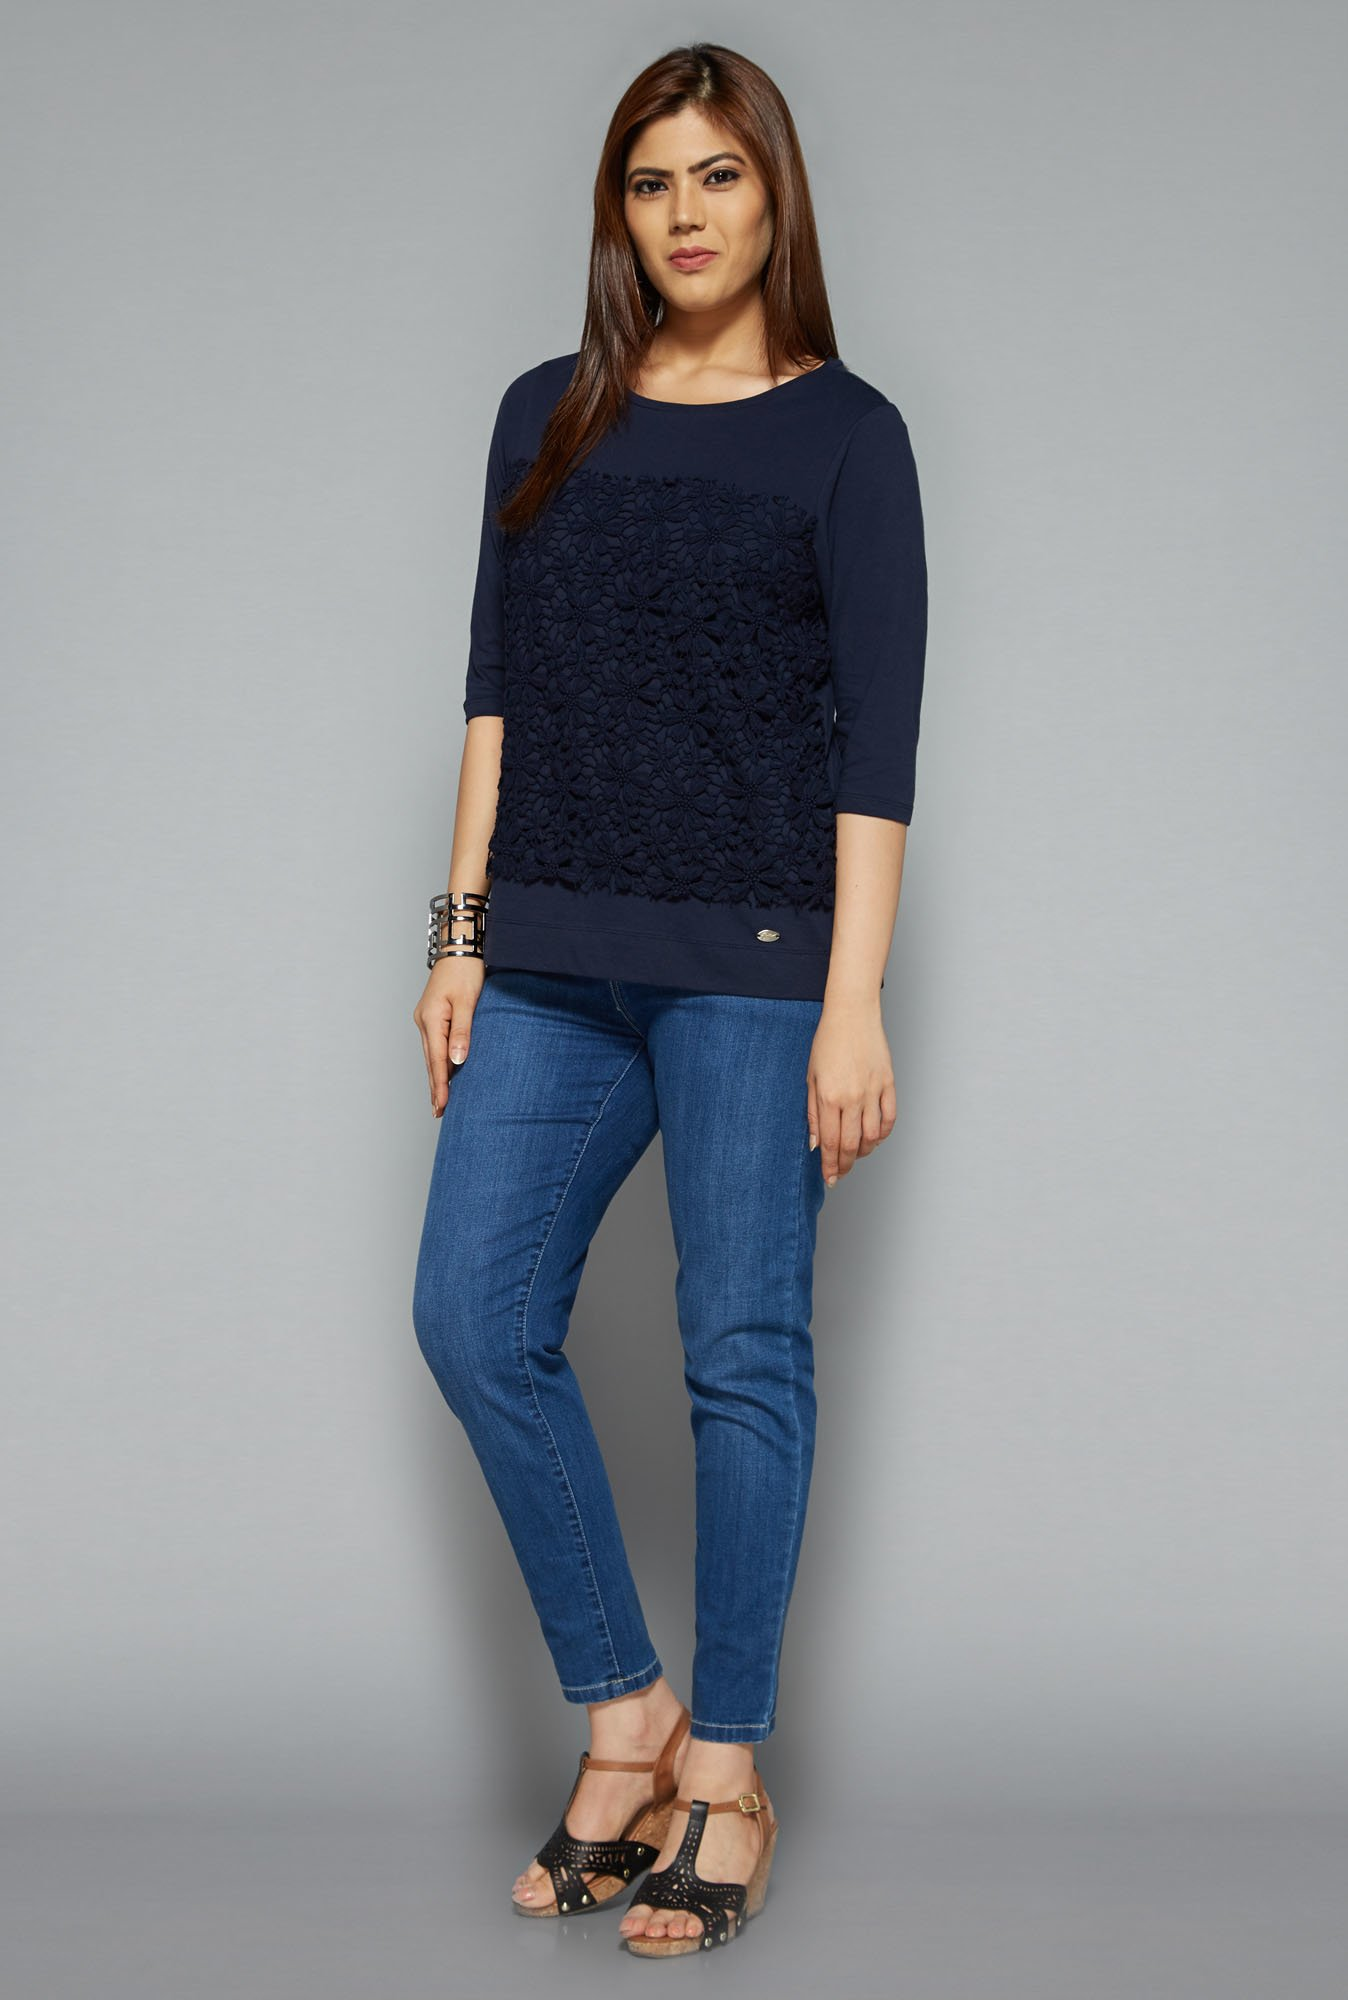 Gia by Westside Navy Finet Top